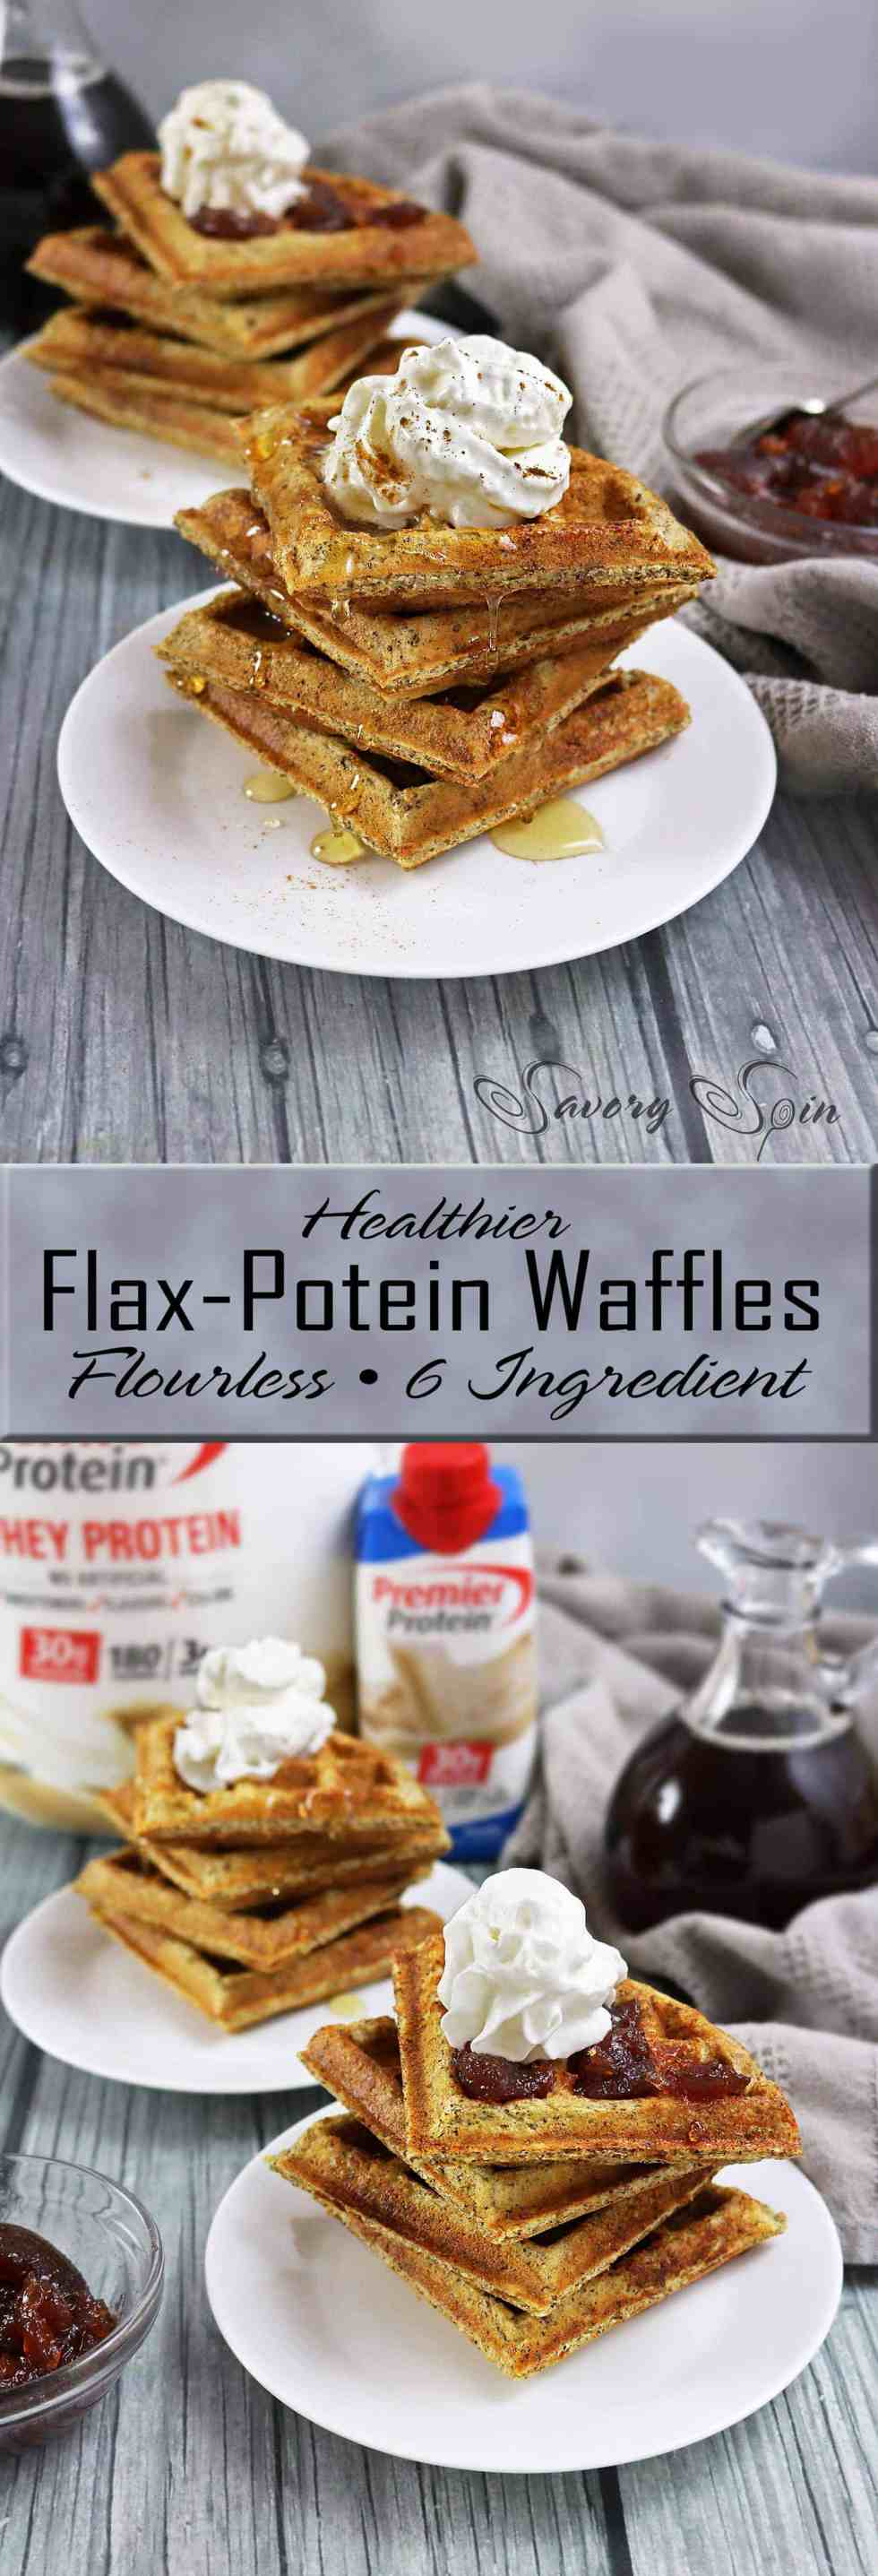 Flax Protein Waffles #TheDayIsYours #Sponsored